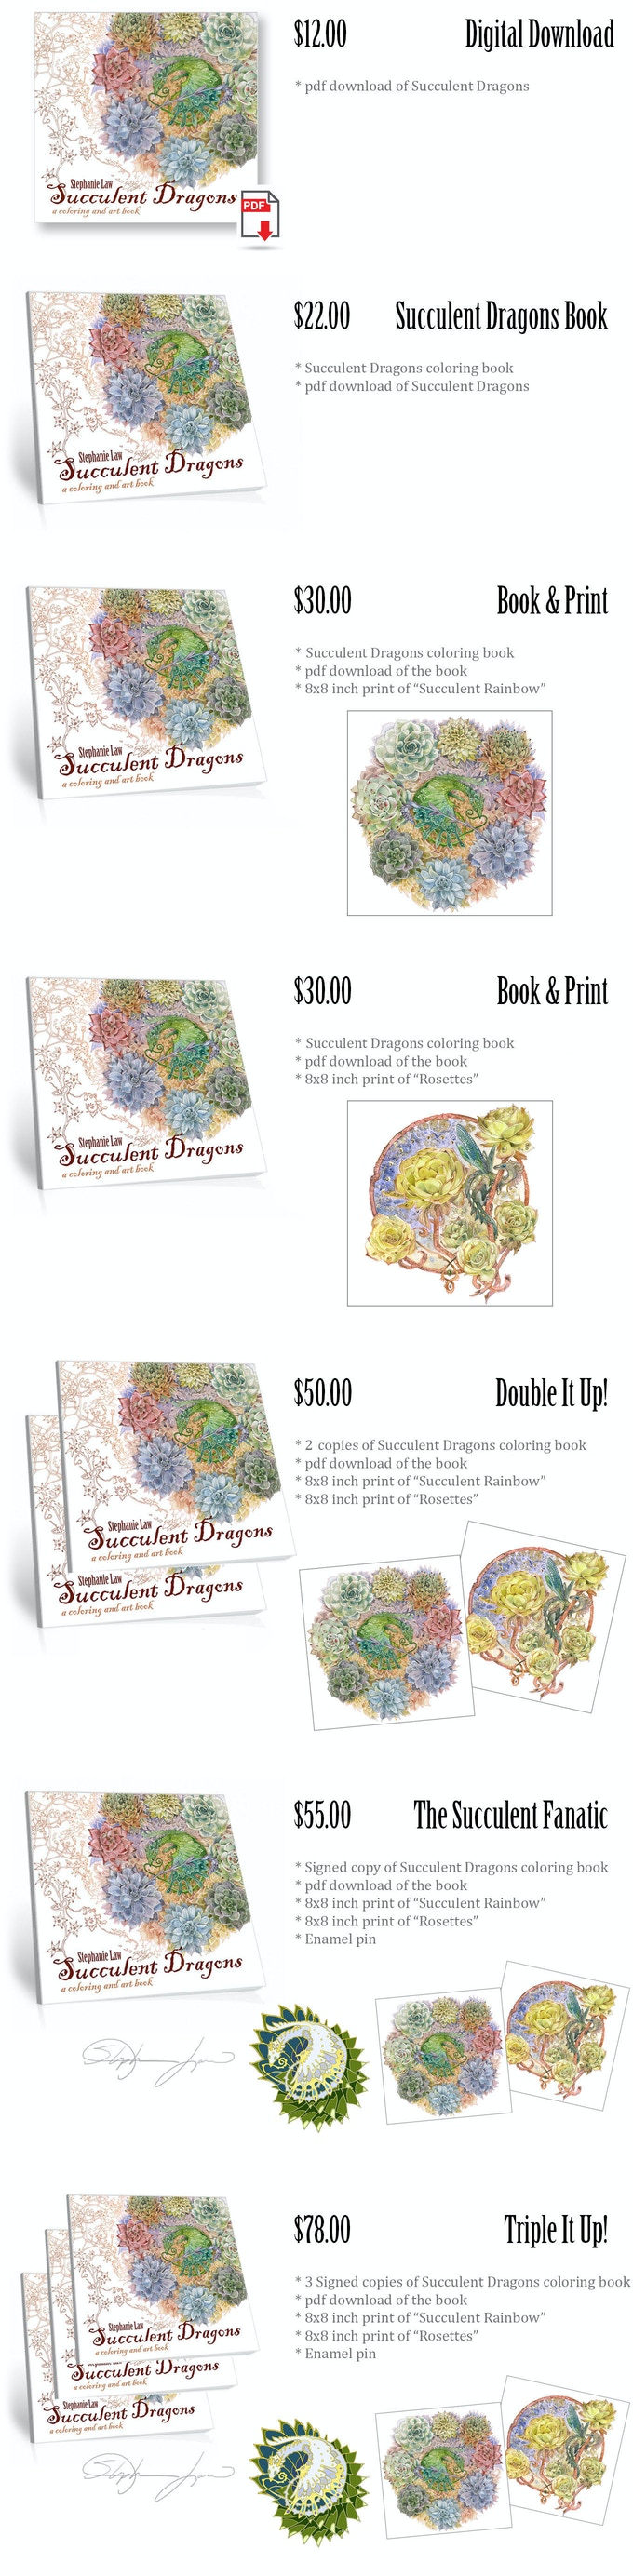 Succulent Dragons A Coloring And Art Book By Stephanie Law